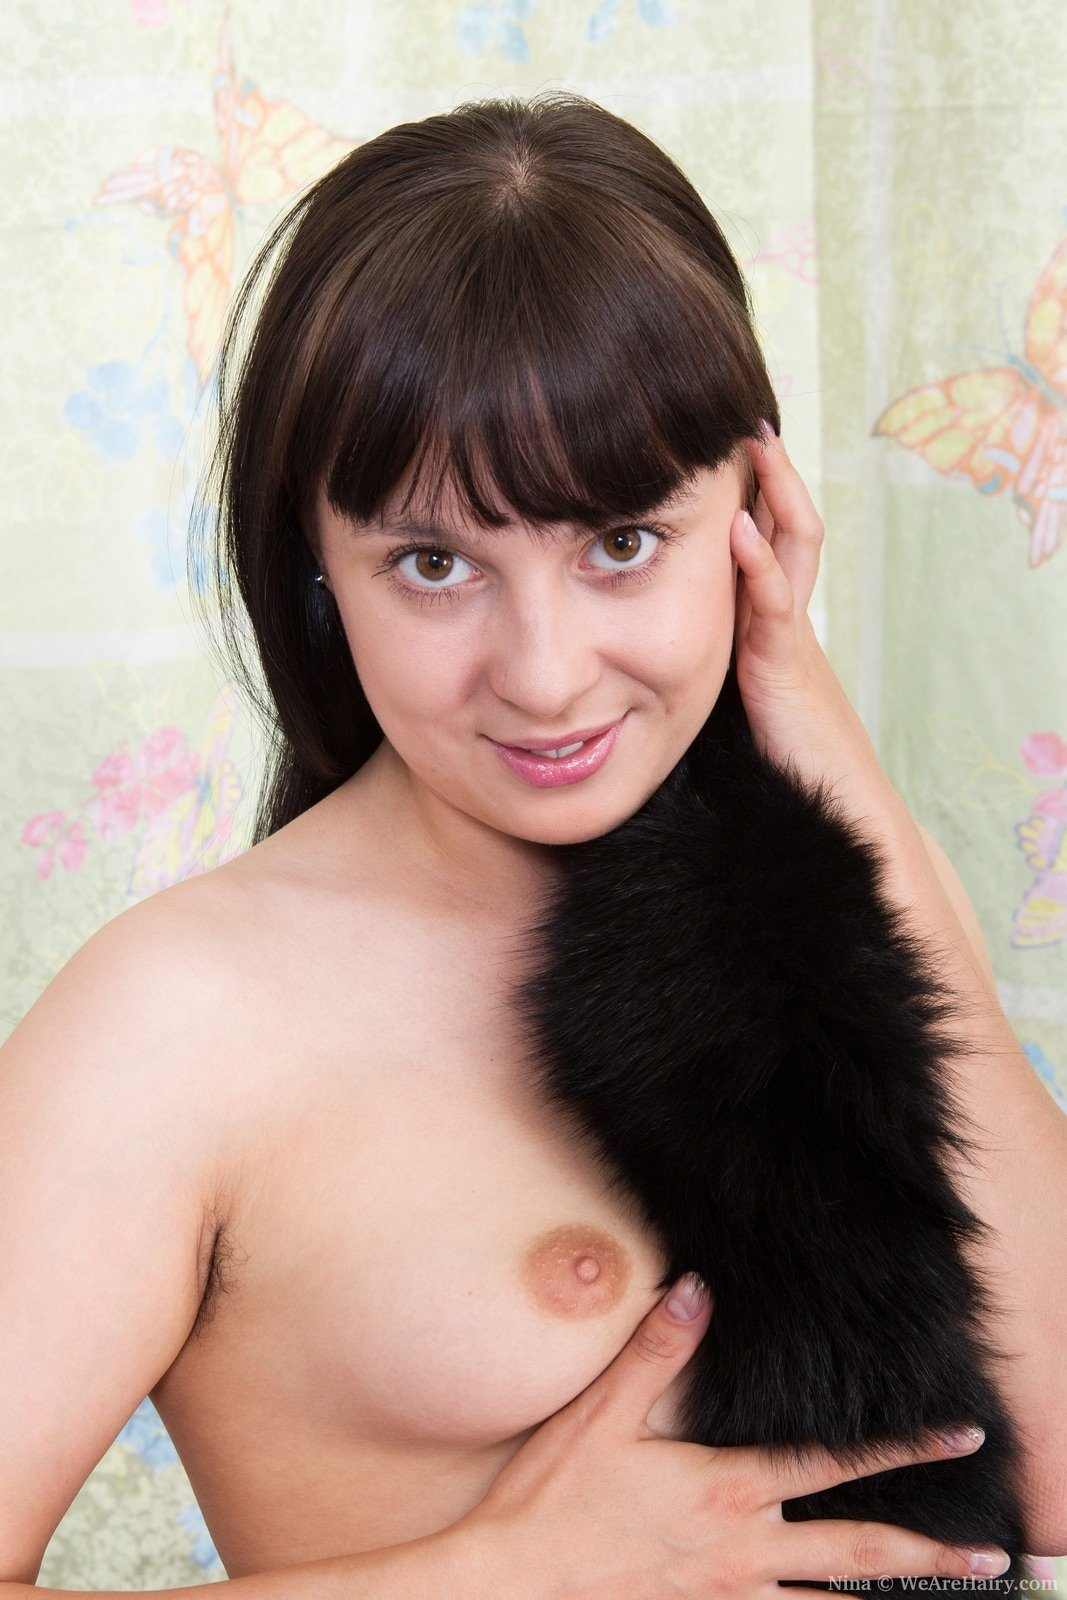 Wife sexy new makeup stories